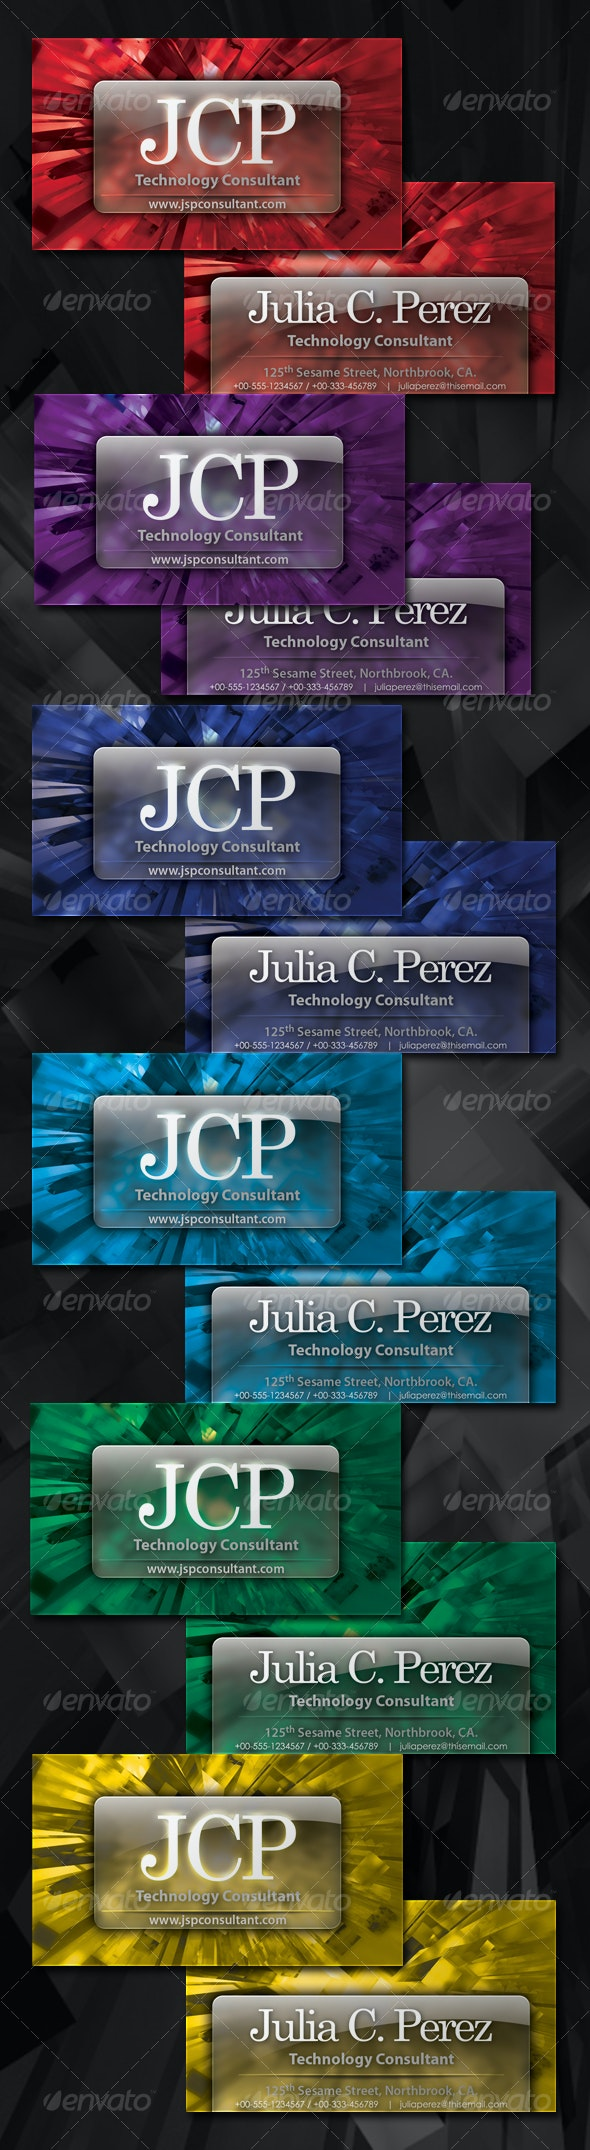 Crystal Business Card - Creative Business Cards